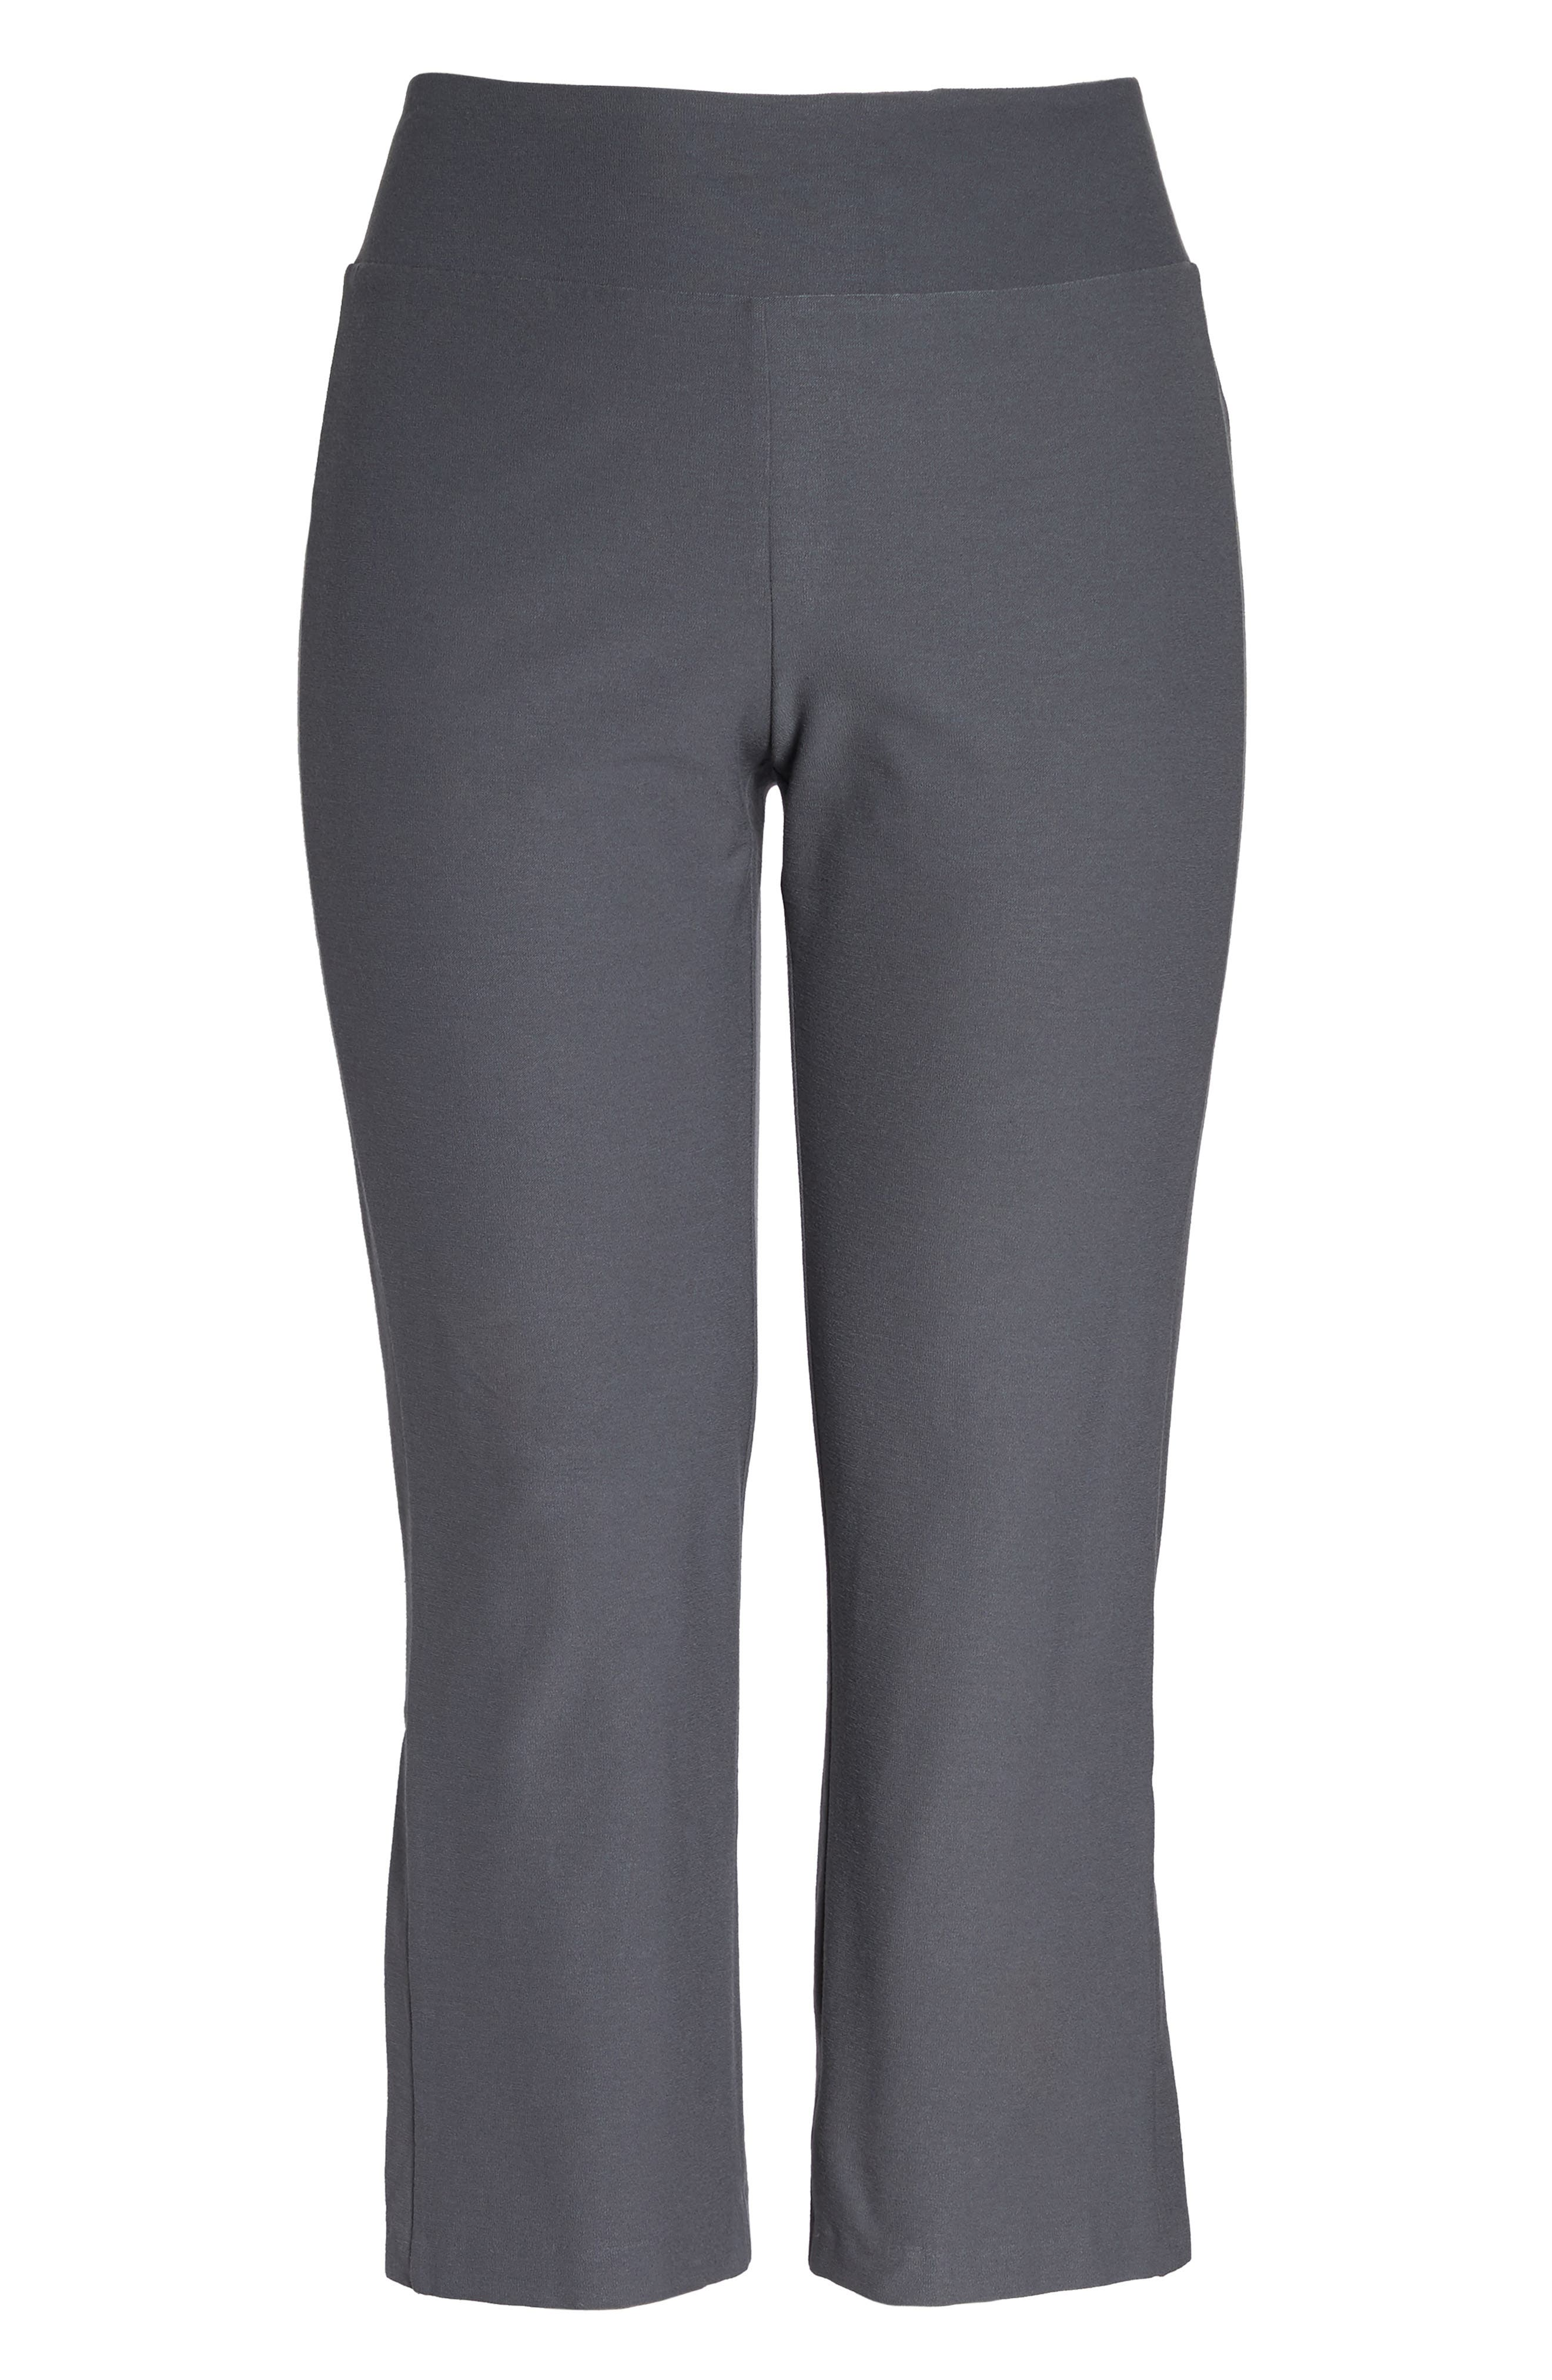 Alternate Image 4  - Eileen Fisher Stretch Bootcut Pants (Plus Size)